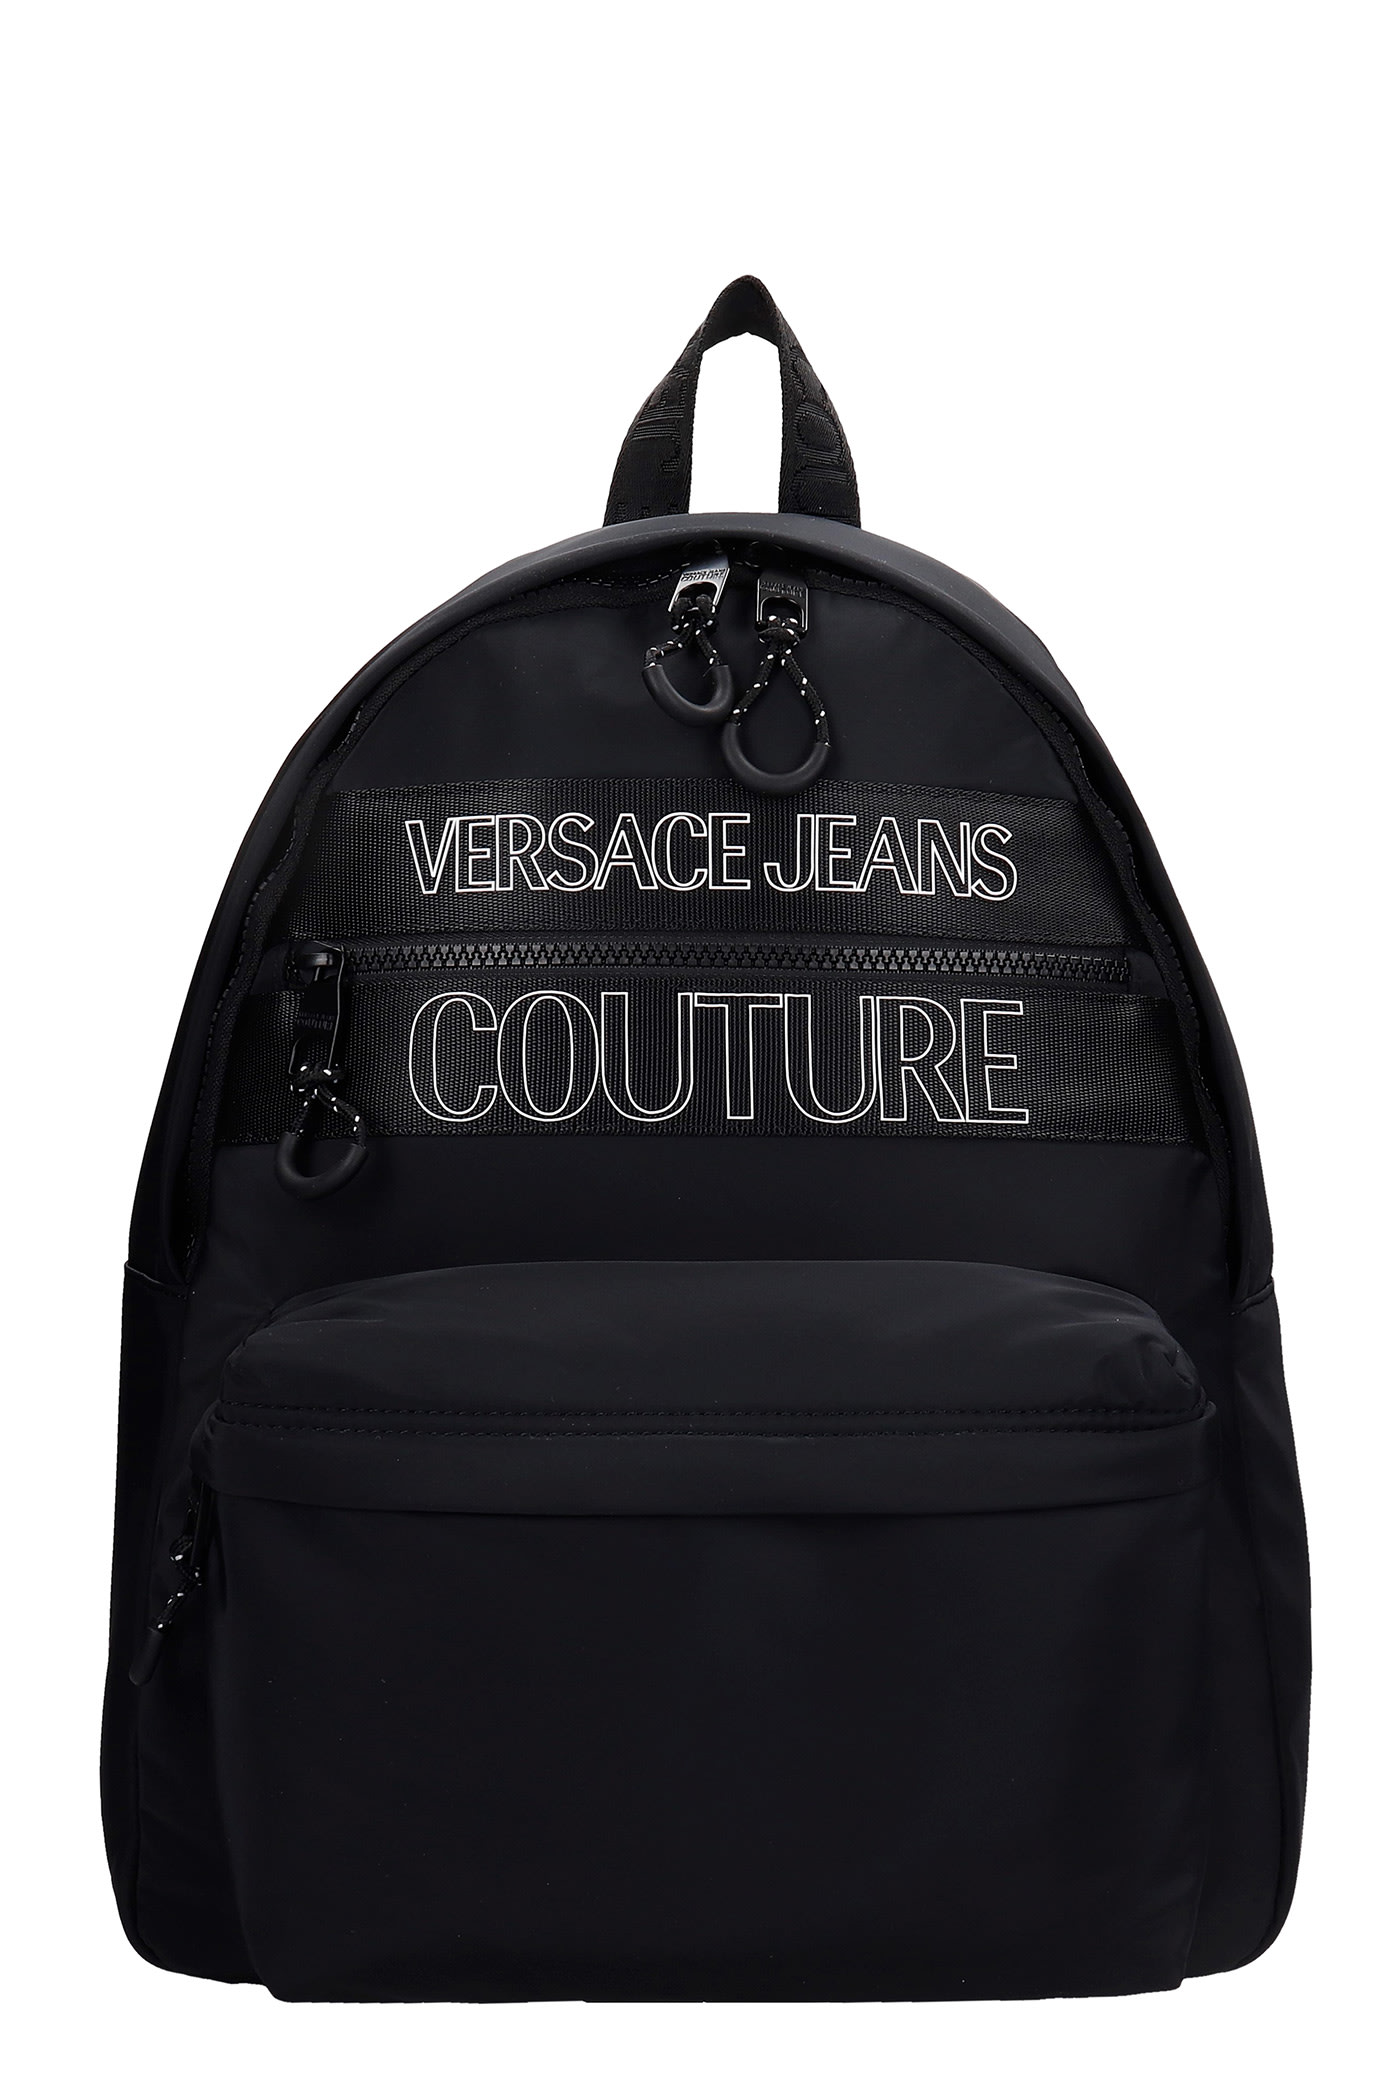 Versace Jeans Couture Backpack In Black Nylon